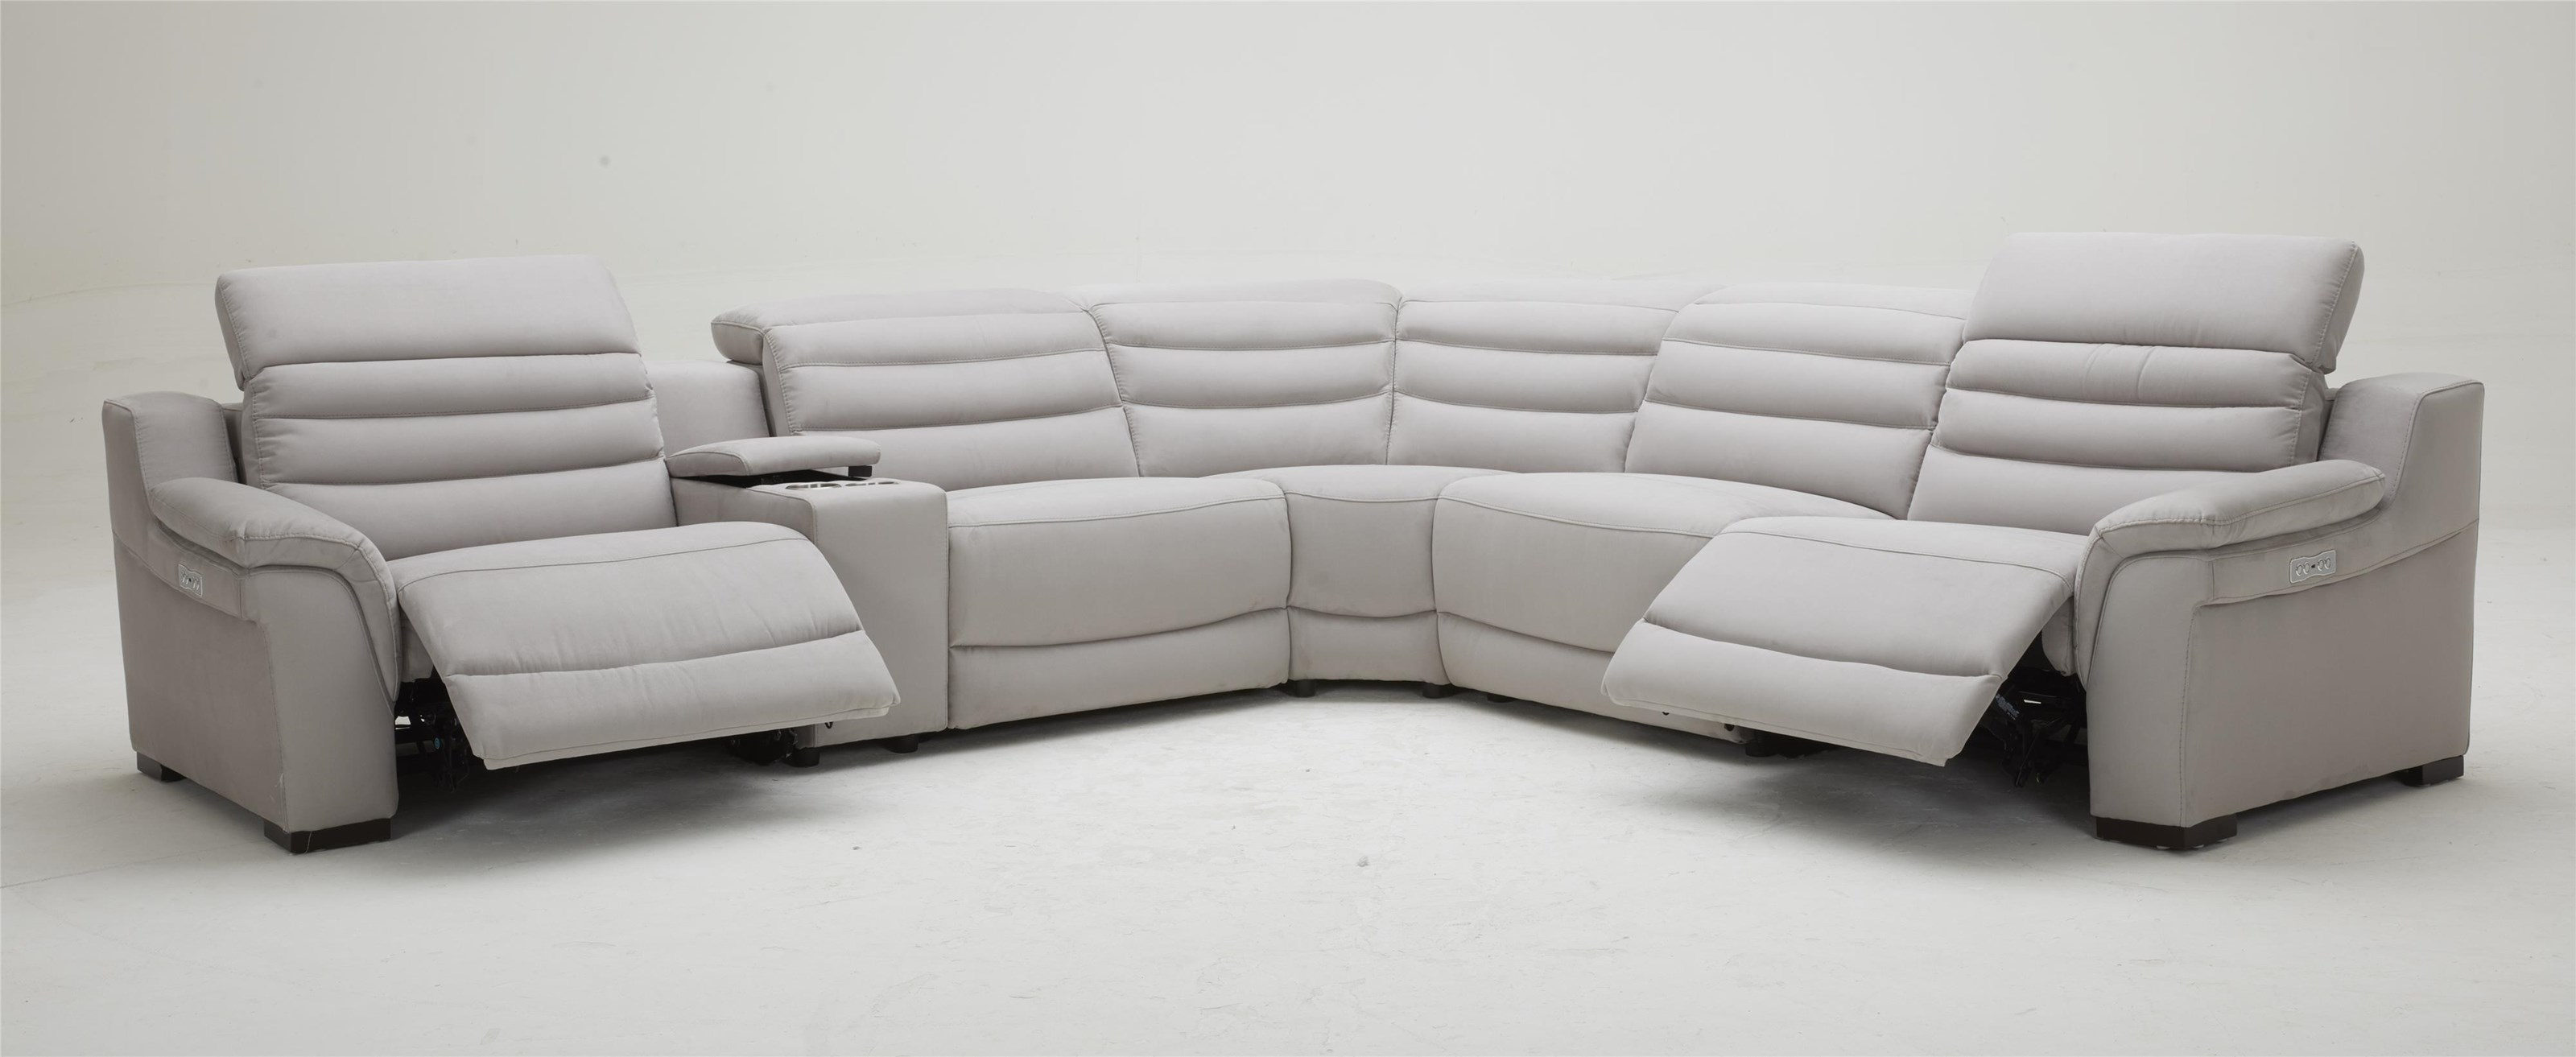 KM177 6-Piece Power Reclining Sectional Sofa by Kuka Home at Beck's Furniture